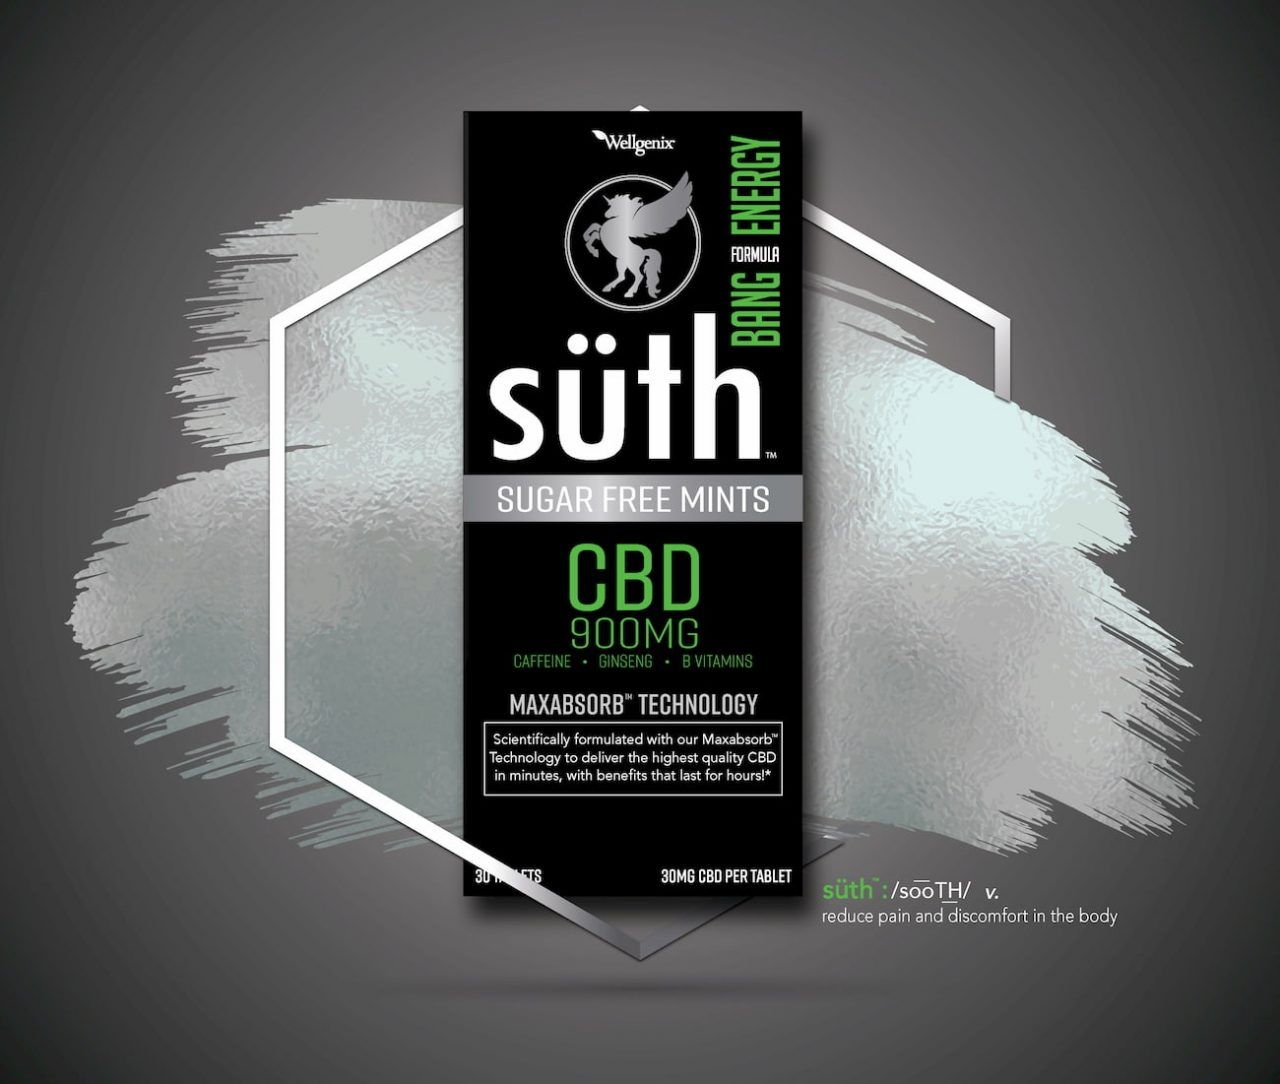 Suth, CBD Sublingual Mints, Bang Energy with Caffeine, 30 Count, 900mg of CBD2